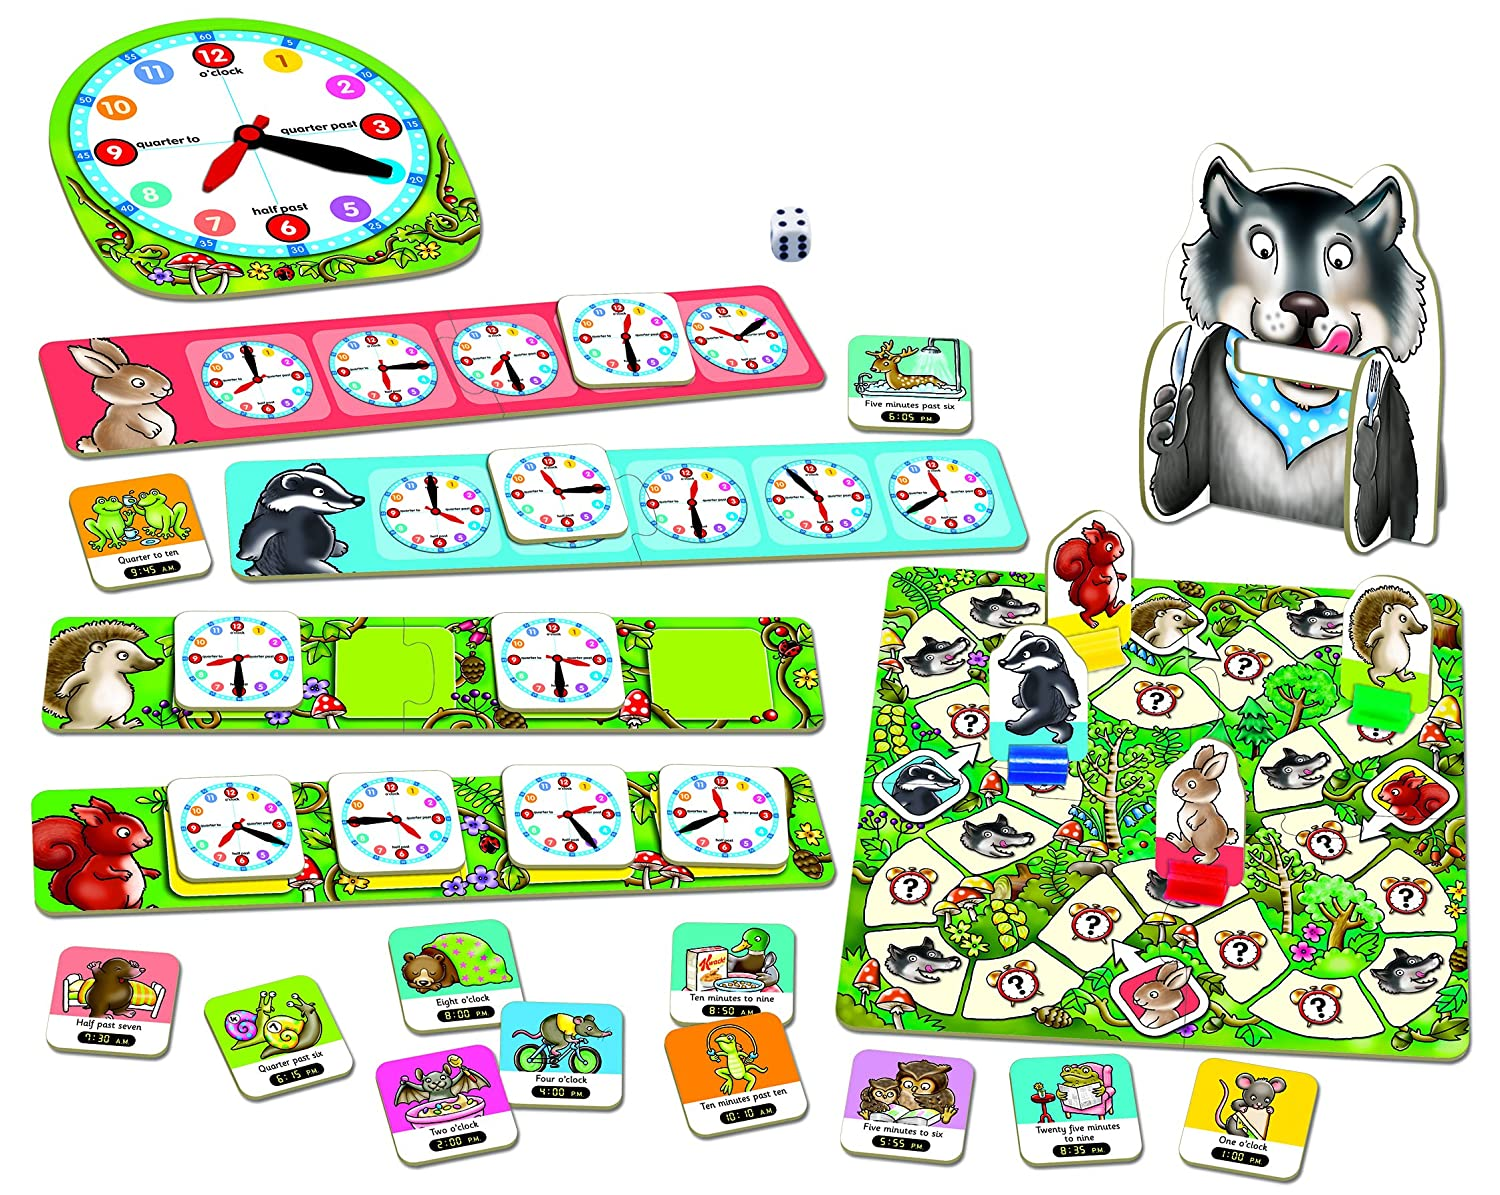 Amazon.com: Orchard Toys Game What Time is It Mr Wolf, 183 ...